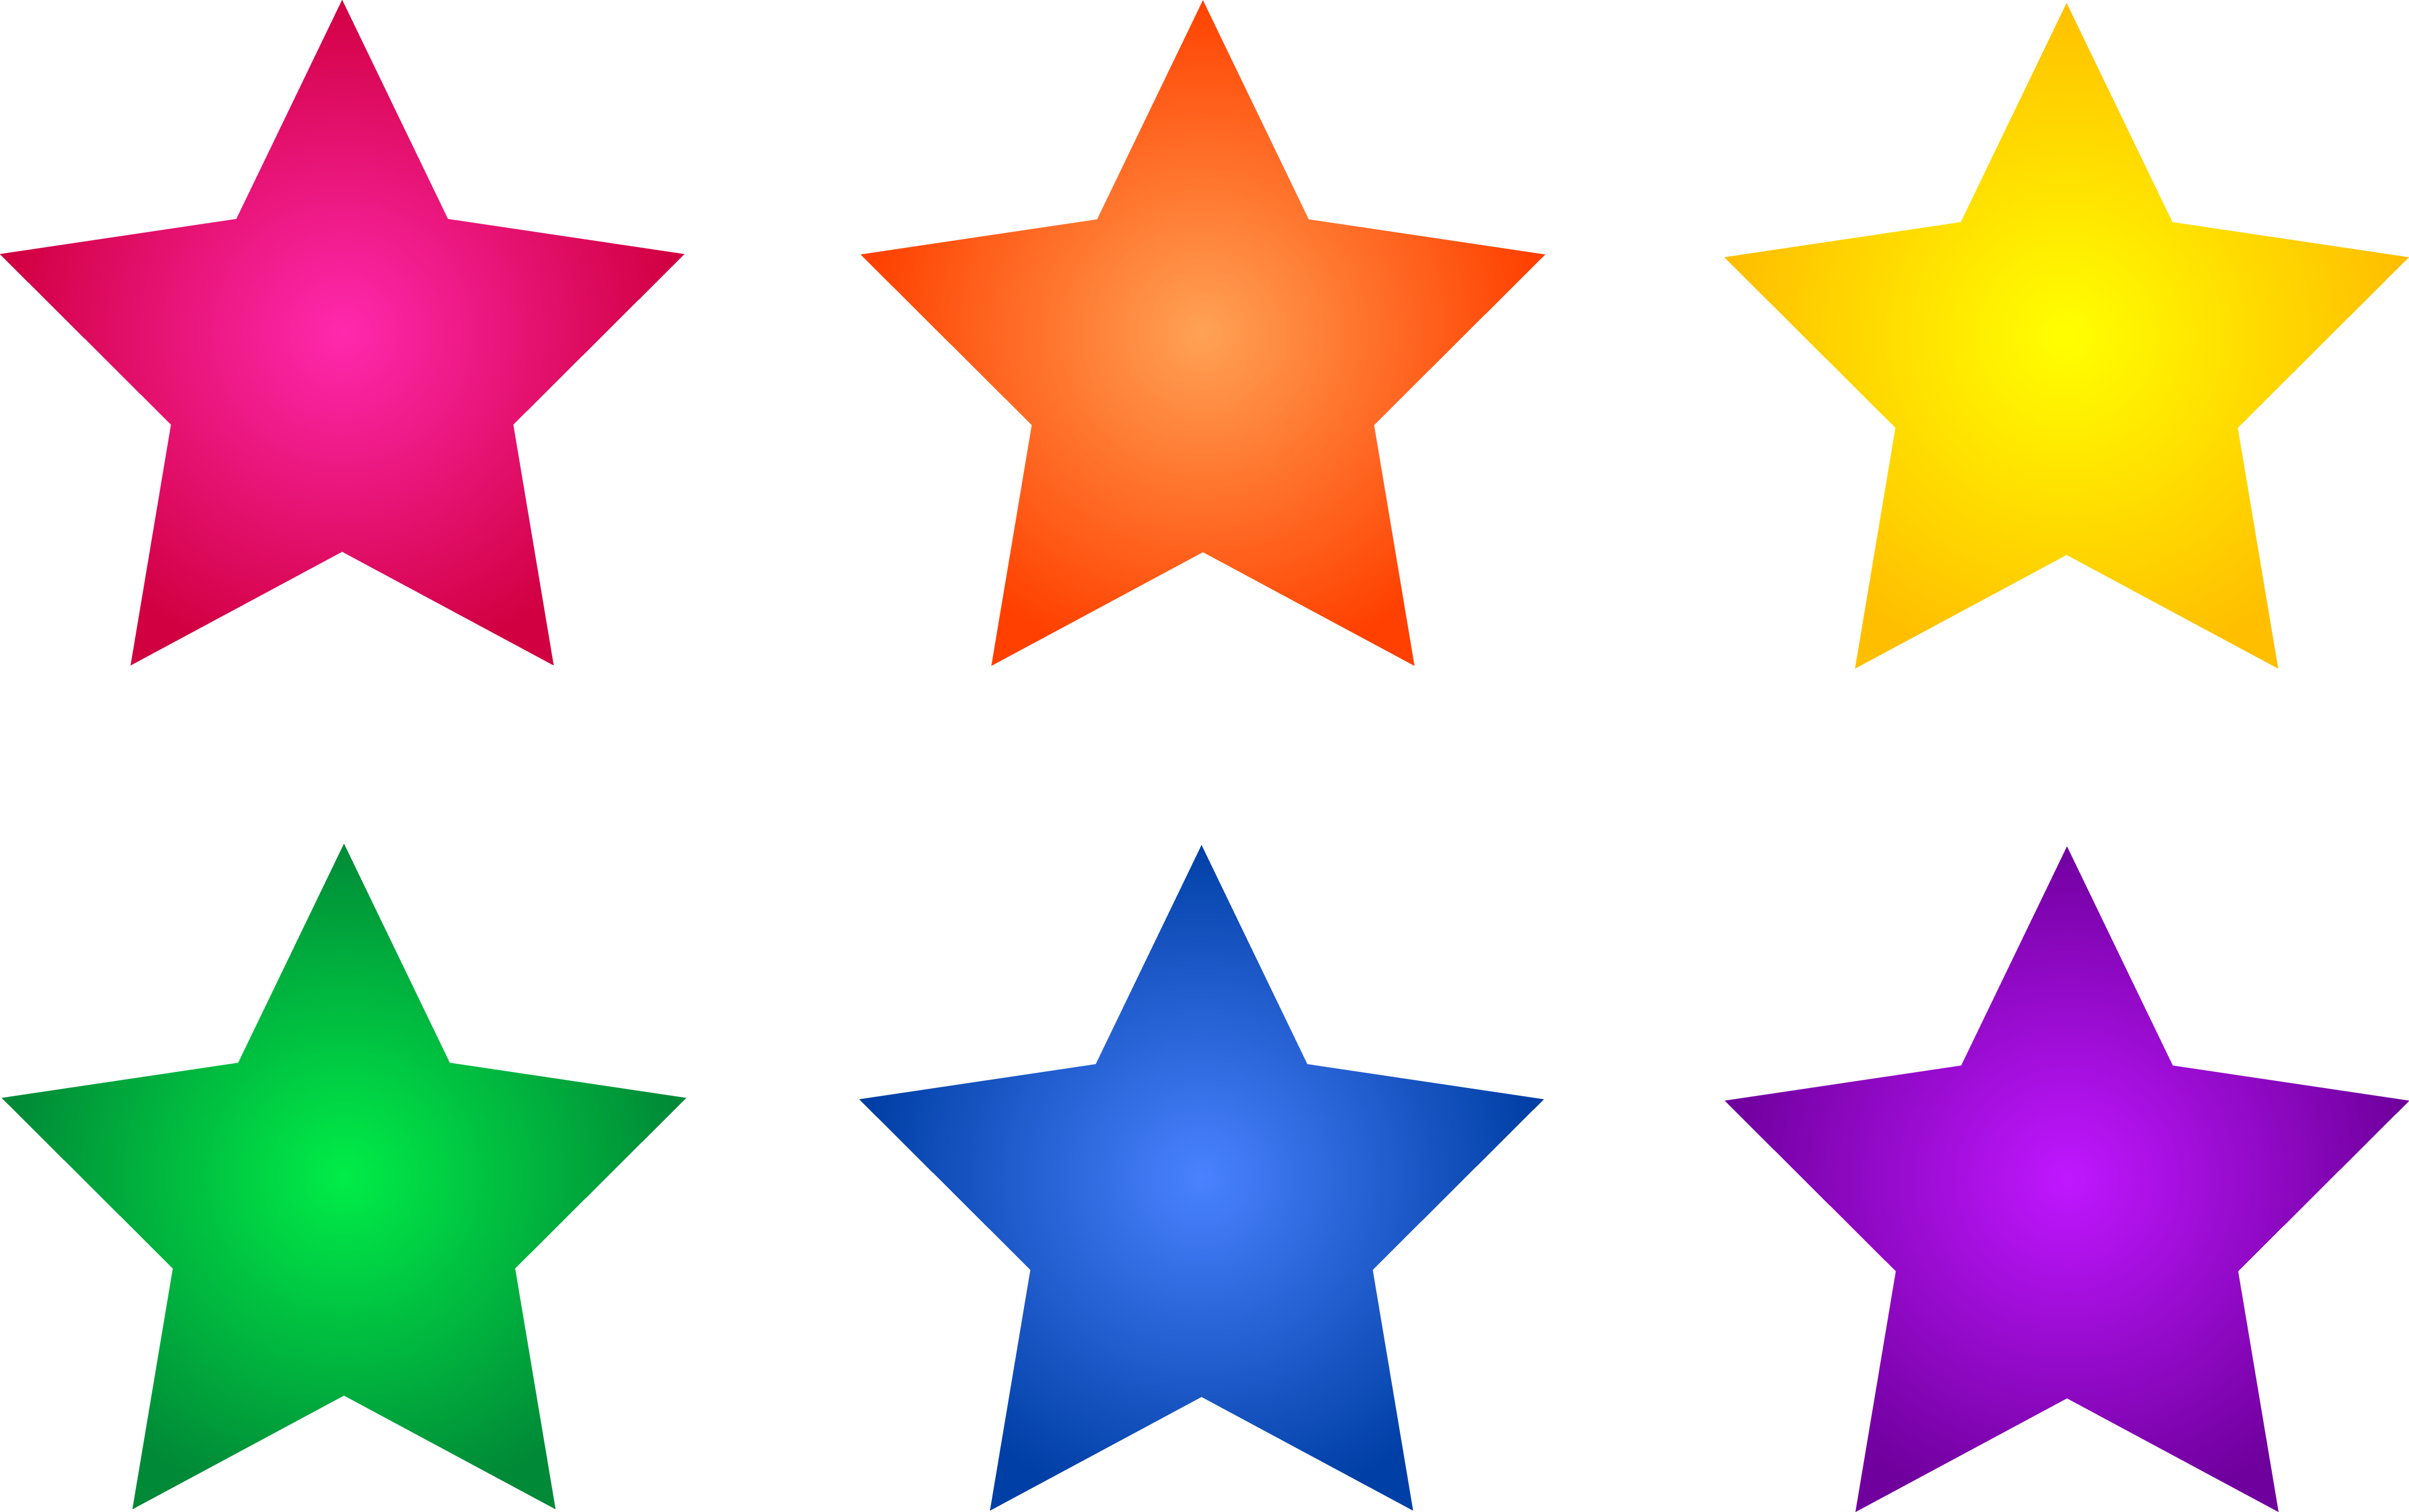 Stars clipart #5, Download drawings